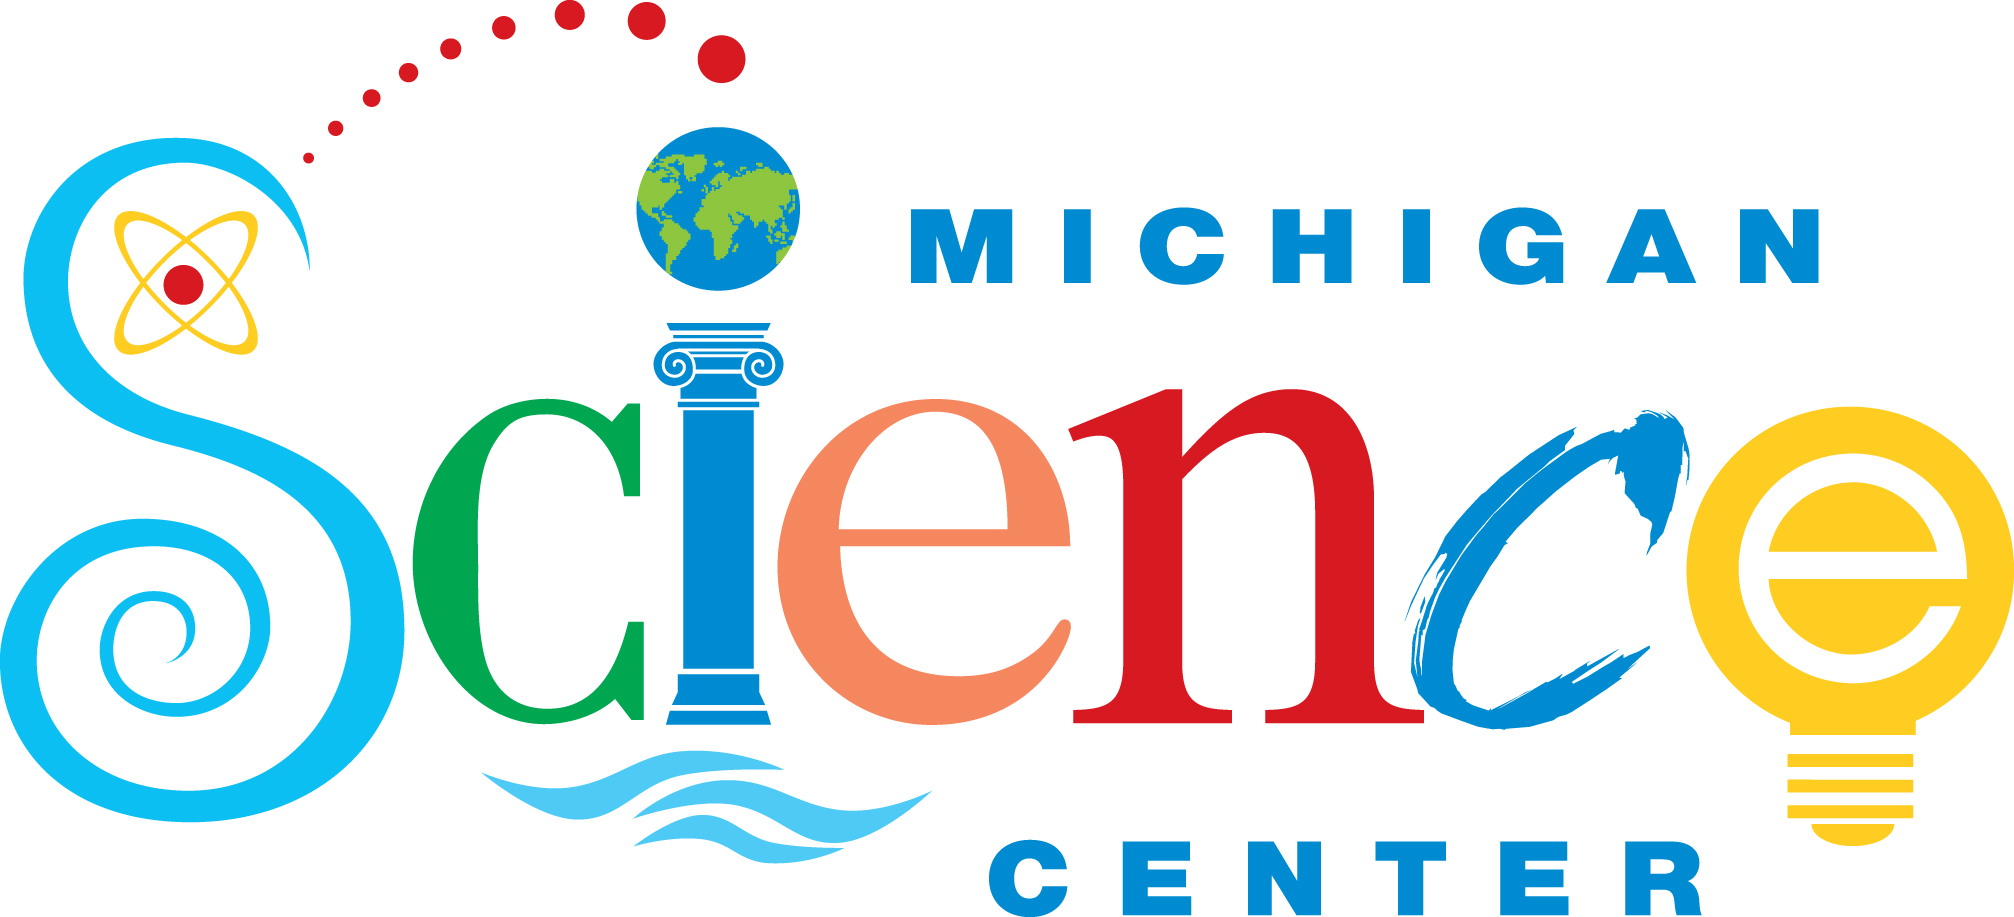 Free Admission to Michigan Science Center on 12/26